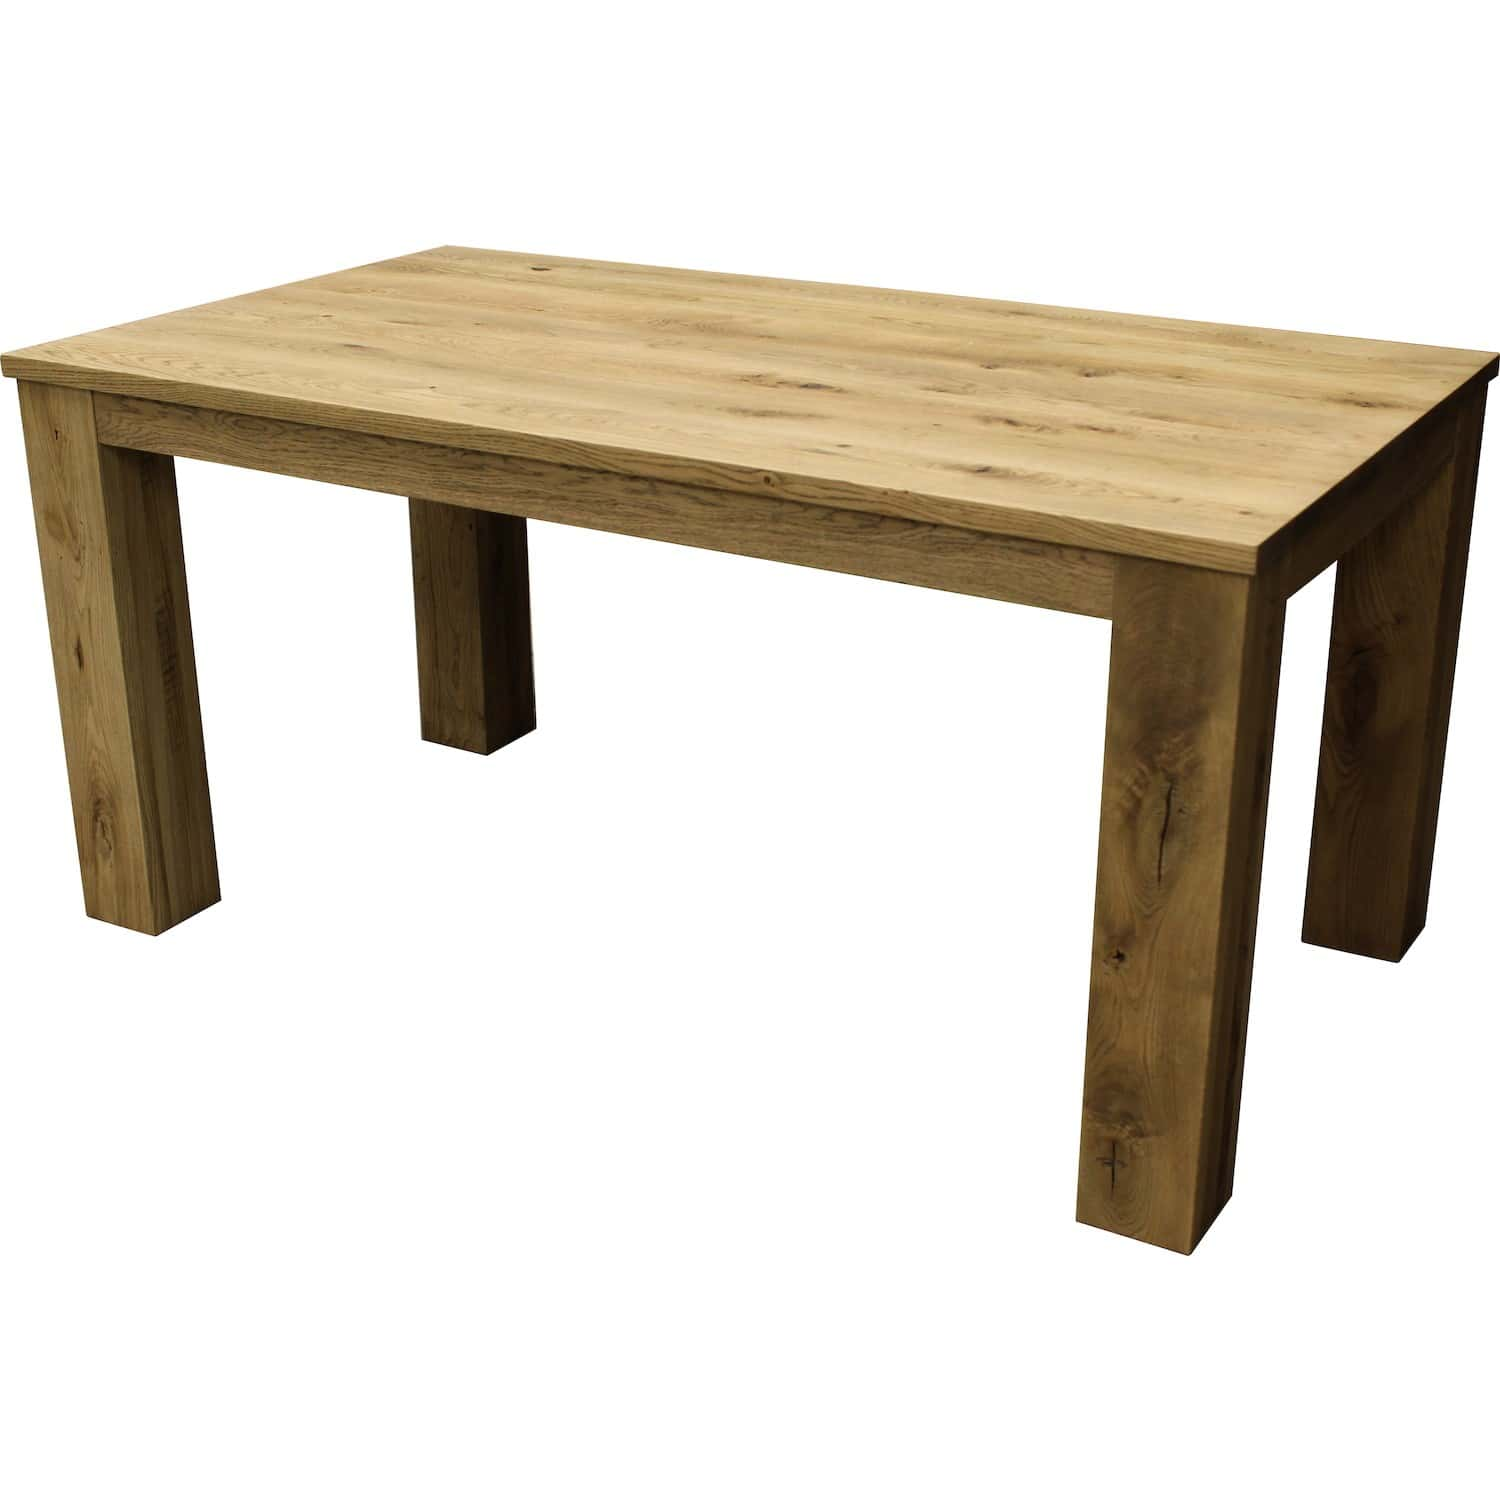 Table rectangulaire en ch ne massif avec allonge int gr e jbf - Table rectangulaire a rallonge ...